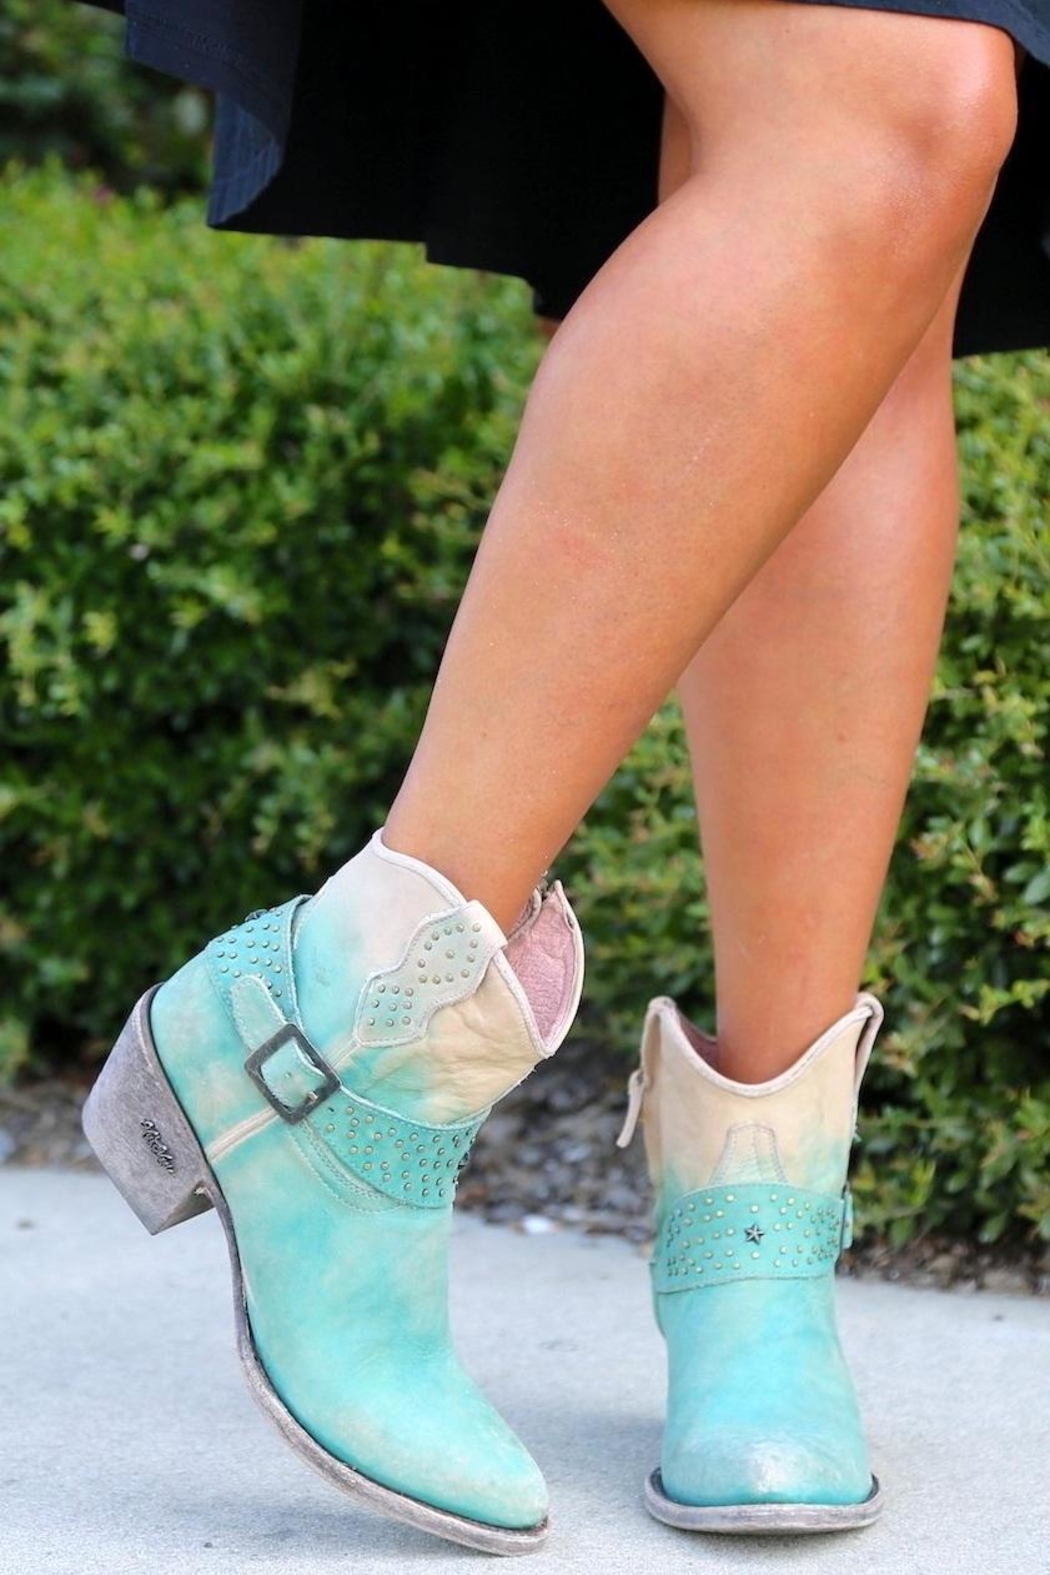 Miss Macie Boots Fine-N-Dandy Turquoise Bootie - Main Image